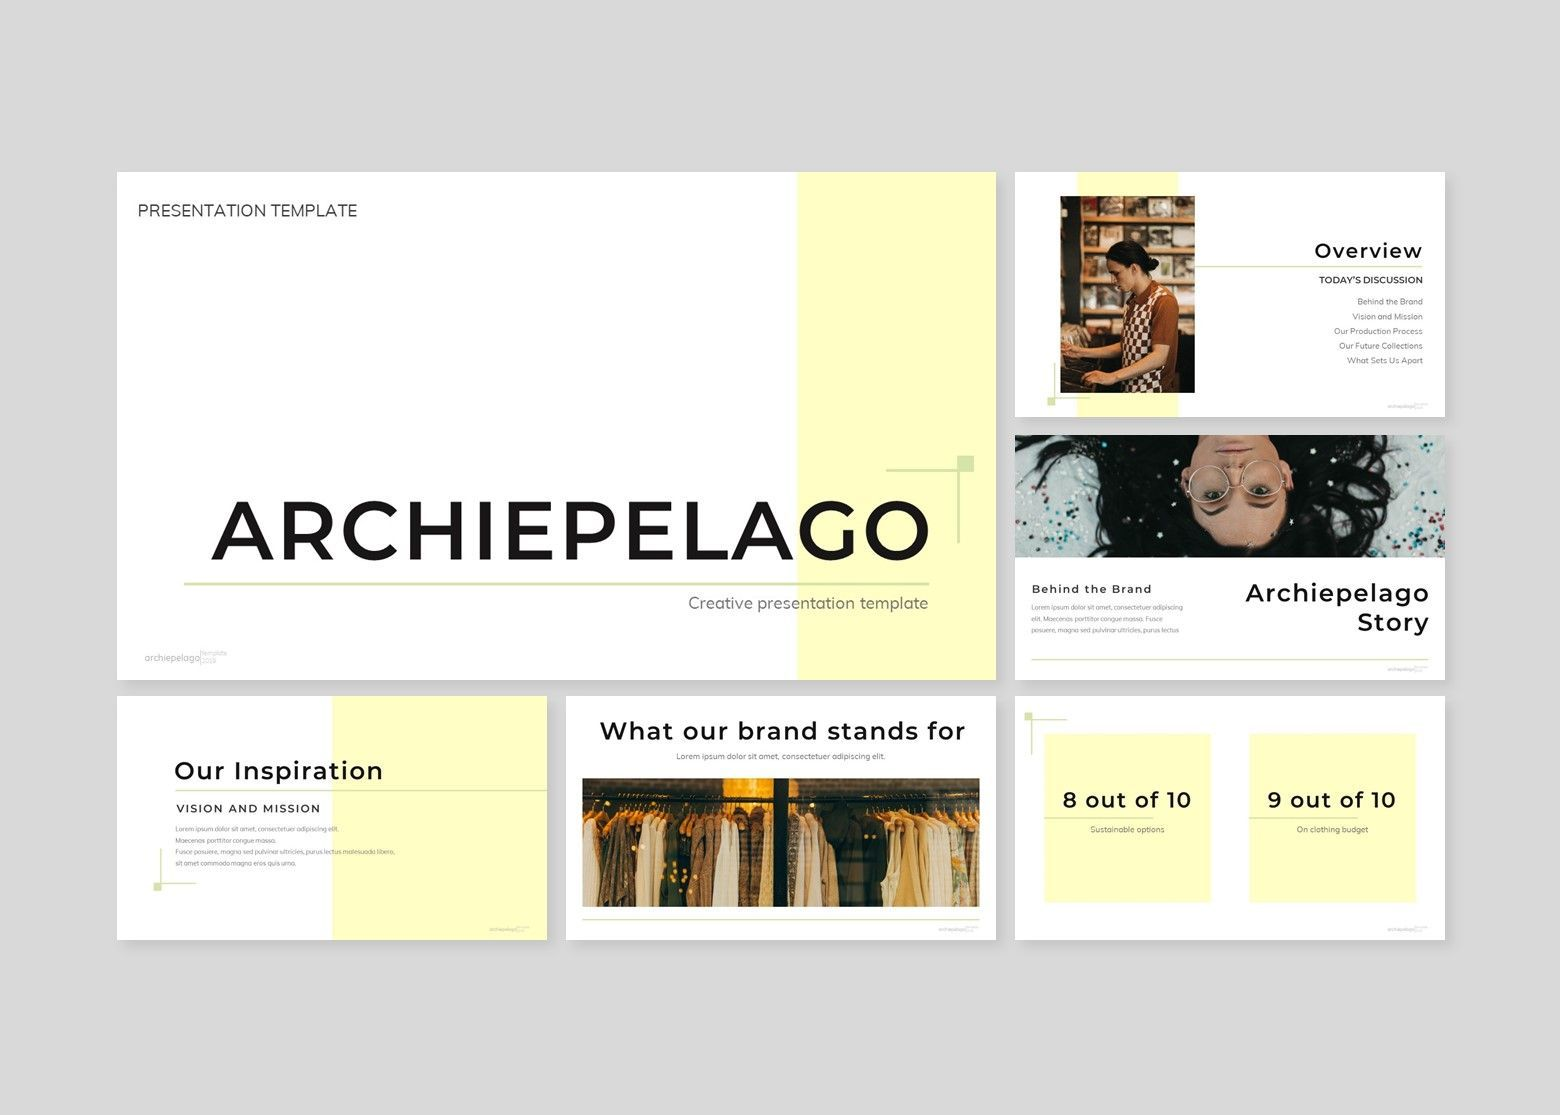 Archiepelago - Google Slides Template, Slide 2, 07701, Presentation Templates — PoweredTemplate.com